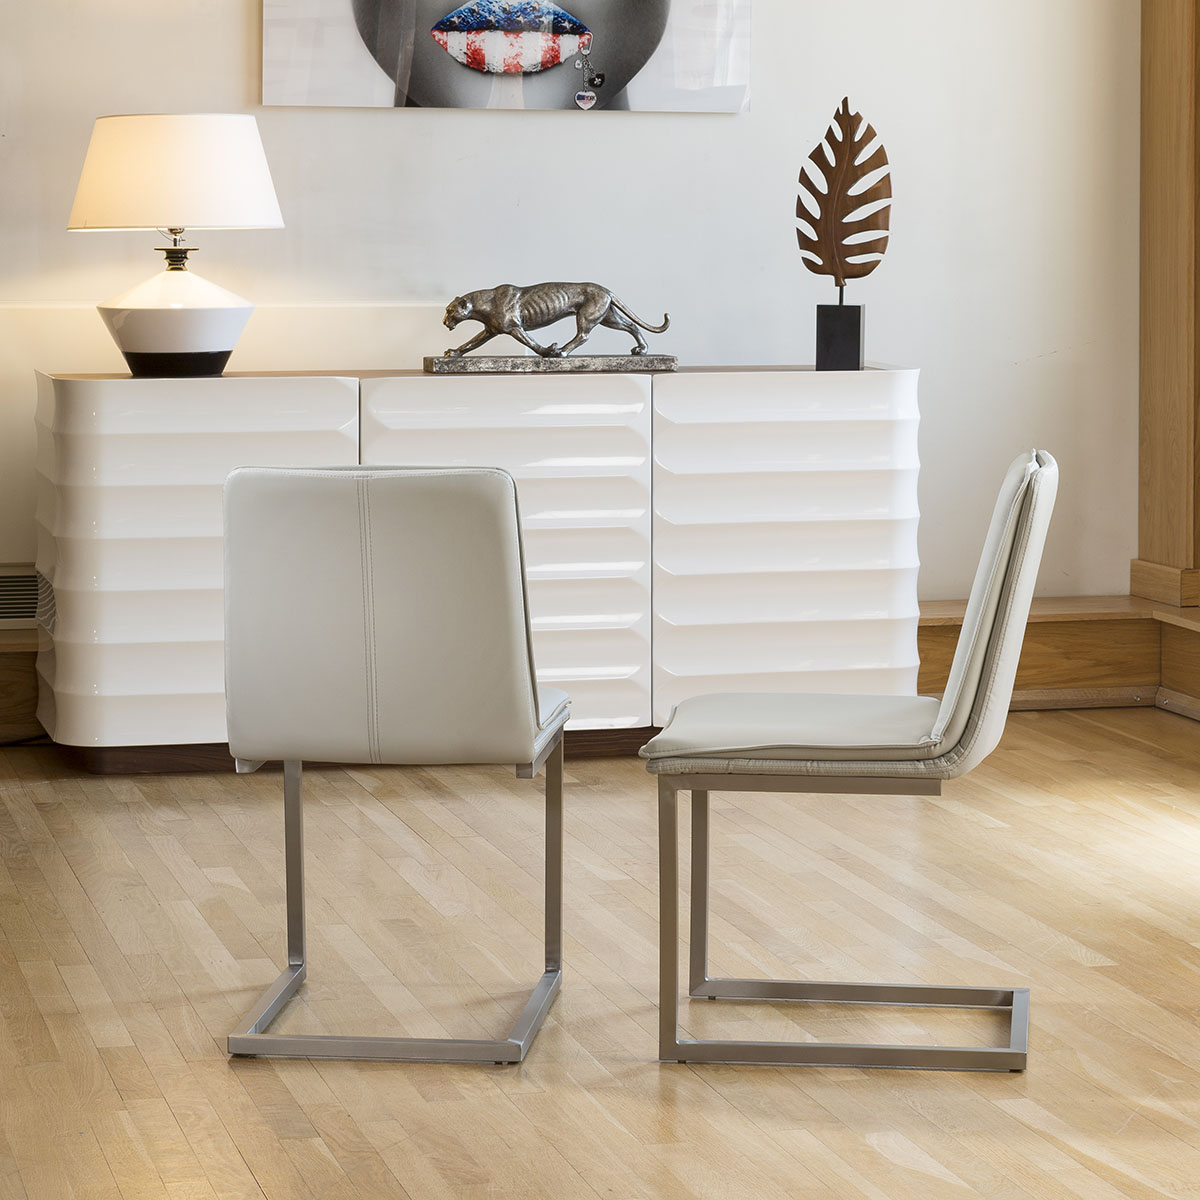 a58f80cf31 Sentinel White Glass Top Extending Dining Table + 6 Ice Grey Cantilever  Chairs